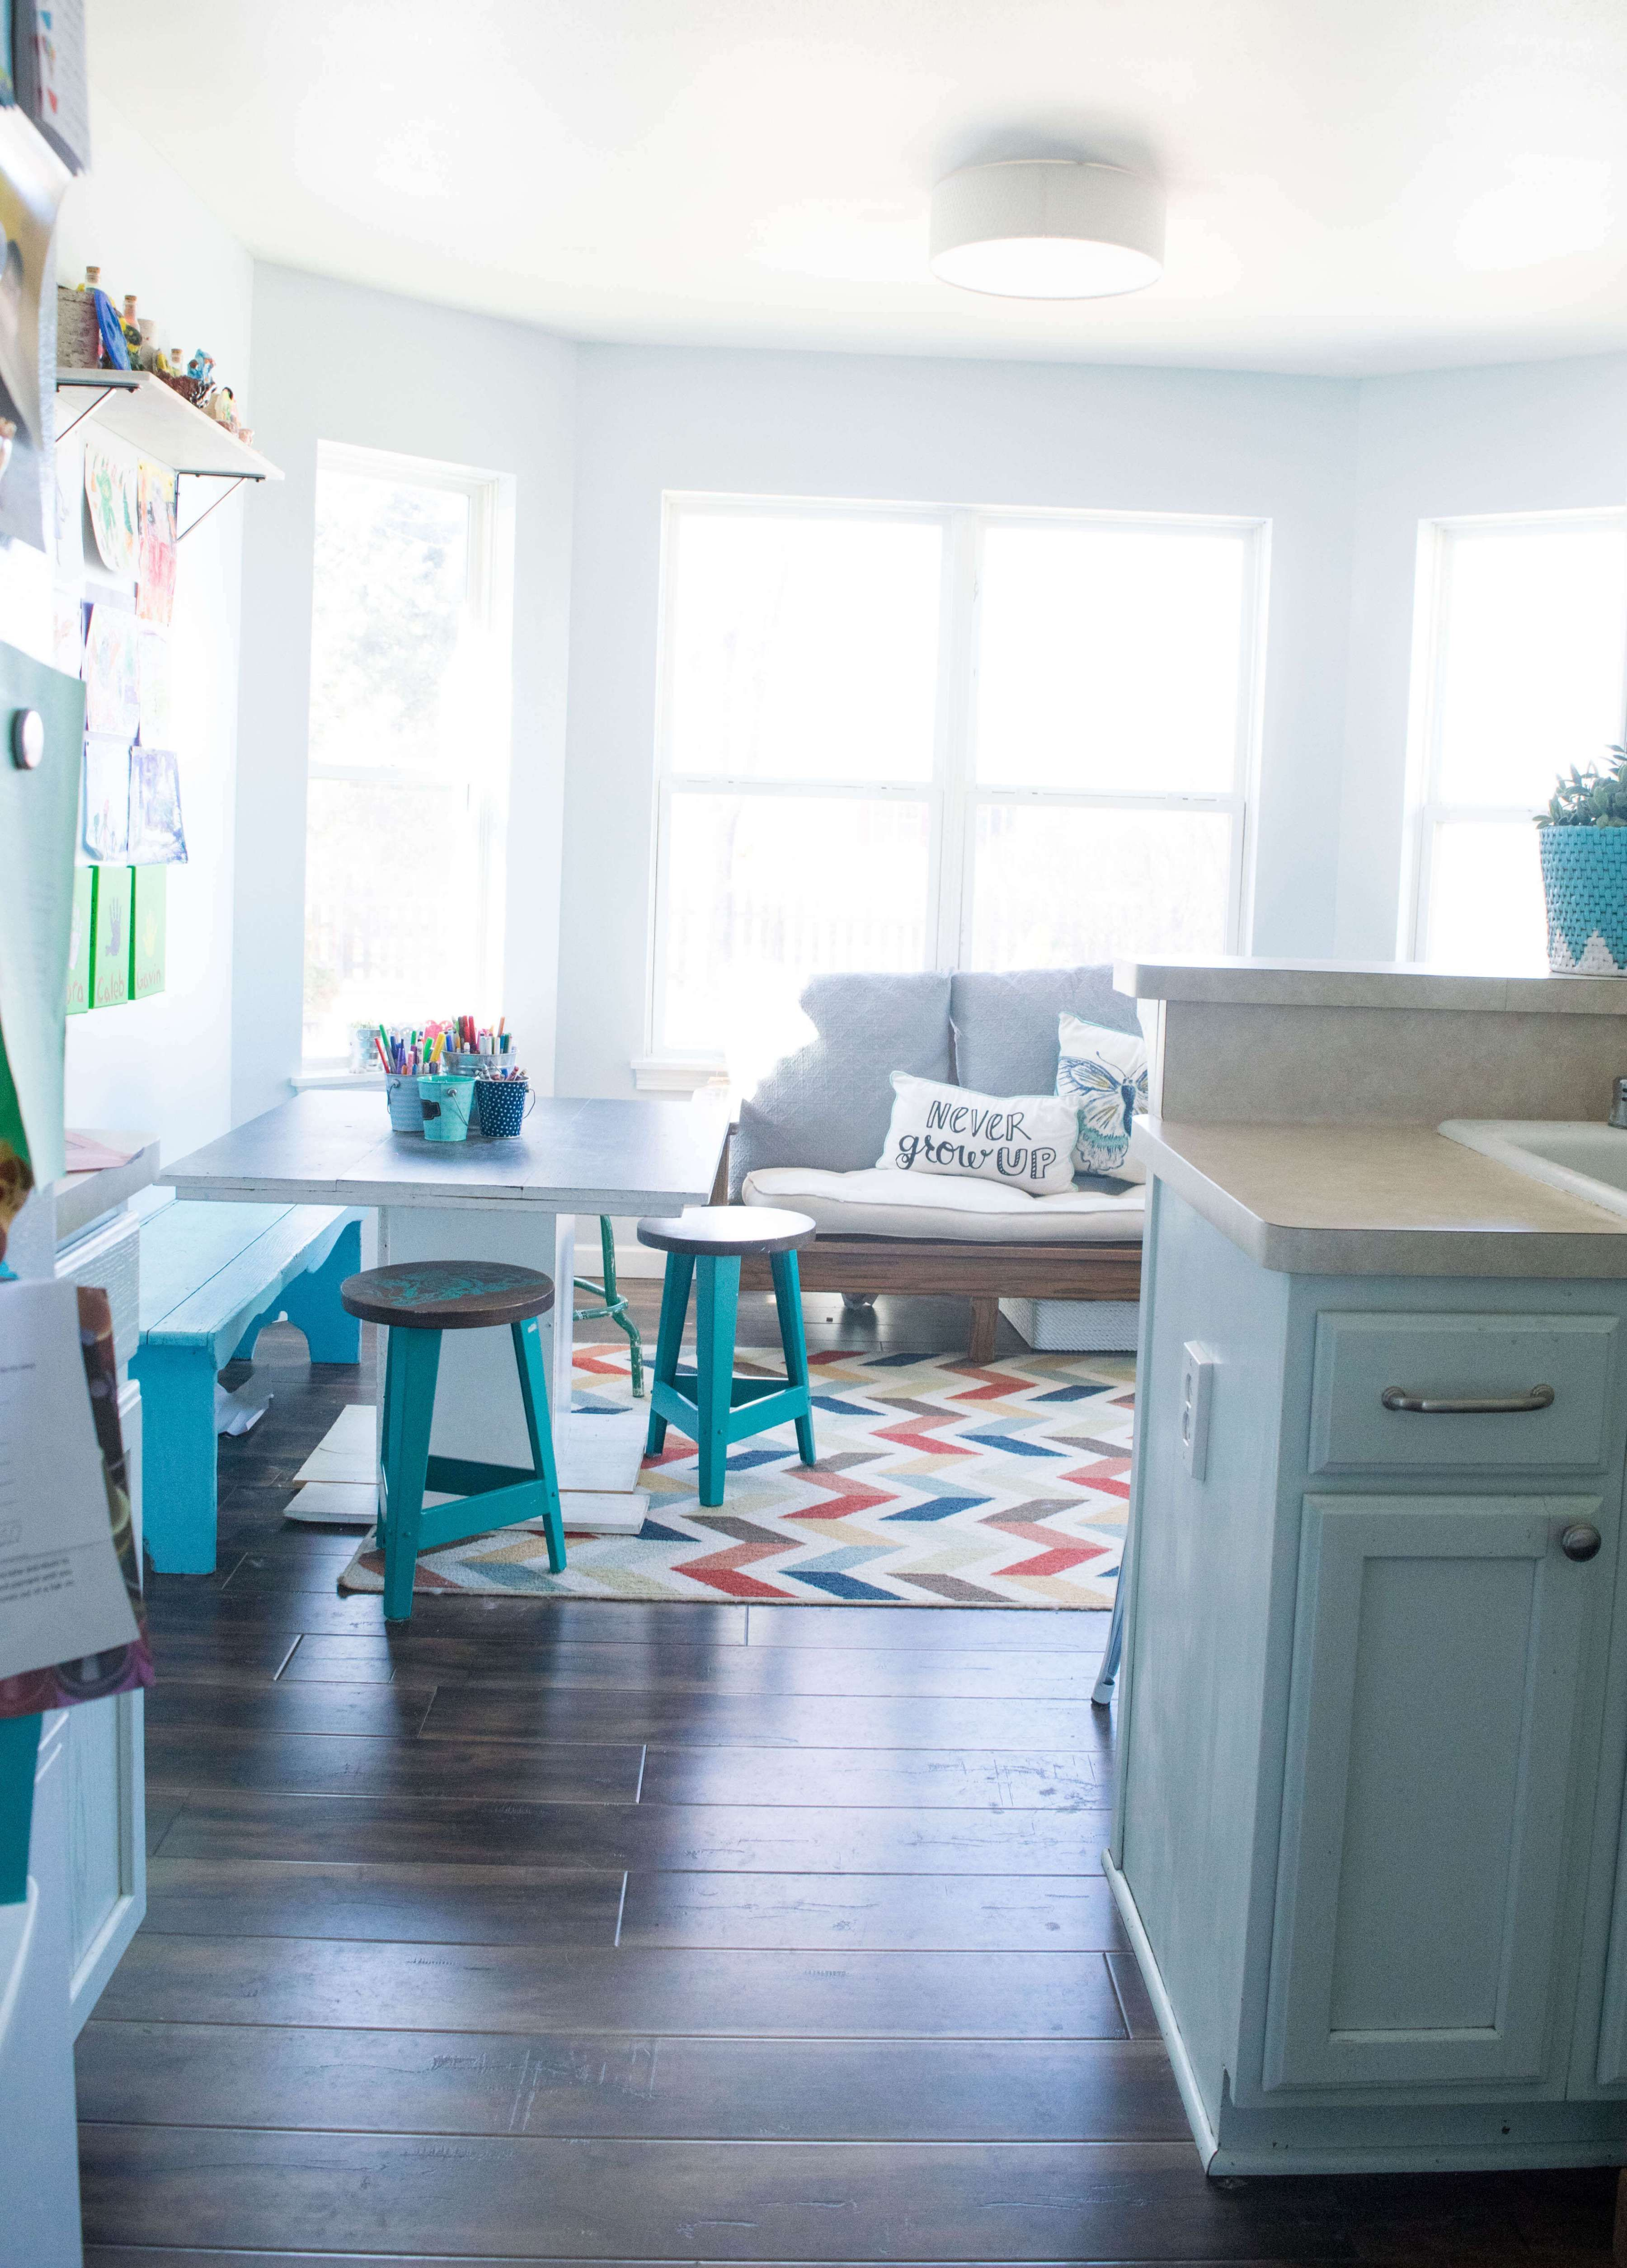 Spring Home Tour, 20 Popular Home Decor Bloggers Share Their Home. DIY,  Craft, Low Cost And Simple Decorating. A Coastal Style Home With Realistic  Decor ...